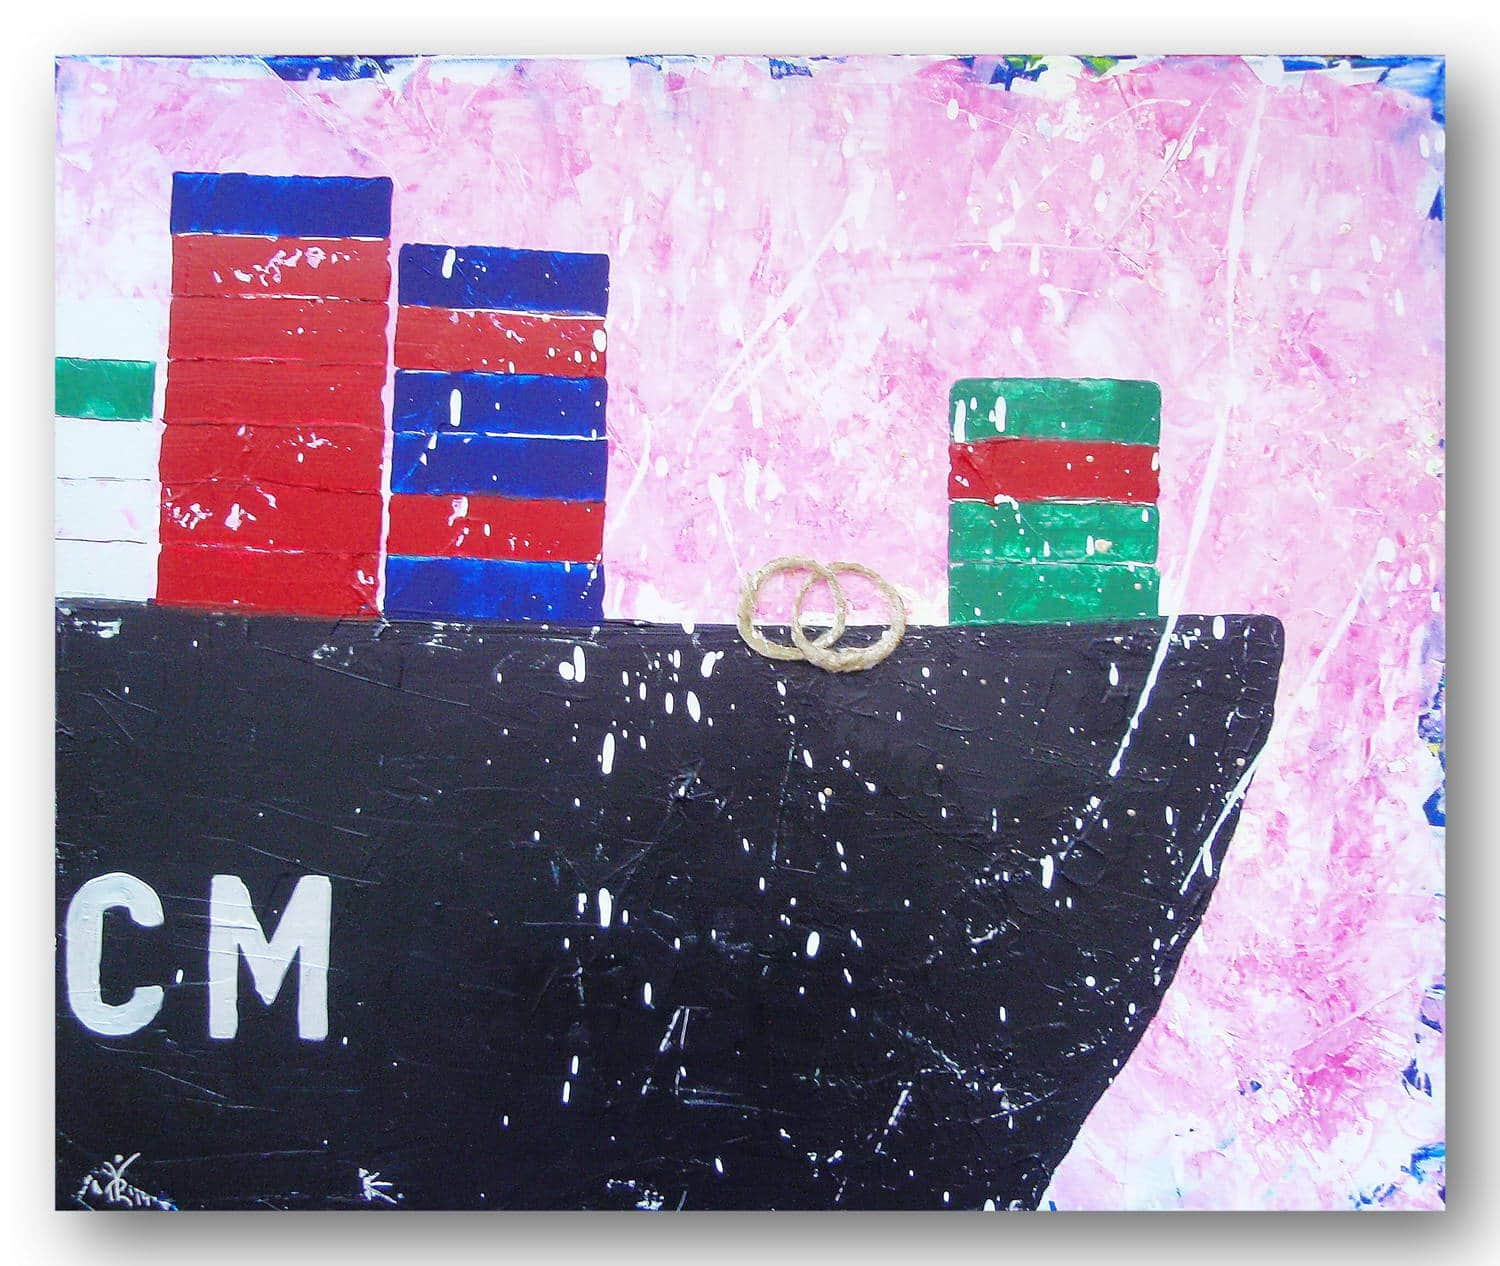 Shipping to Paradise - Acrylic / Canvas 70 x 58 cm, 27.6 x 22.6 inch